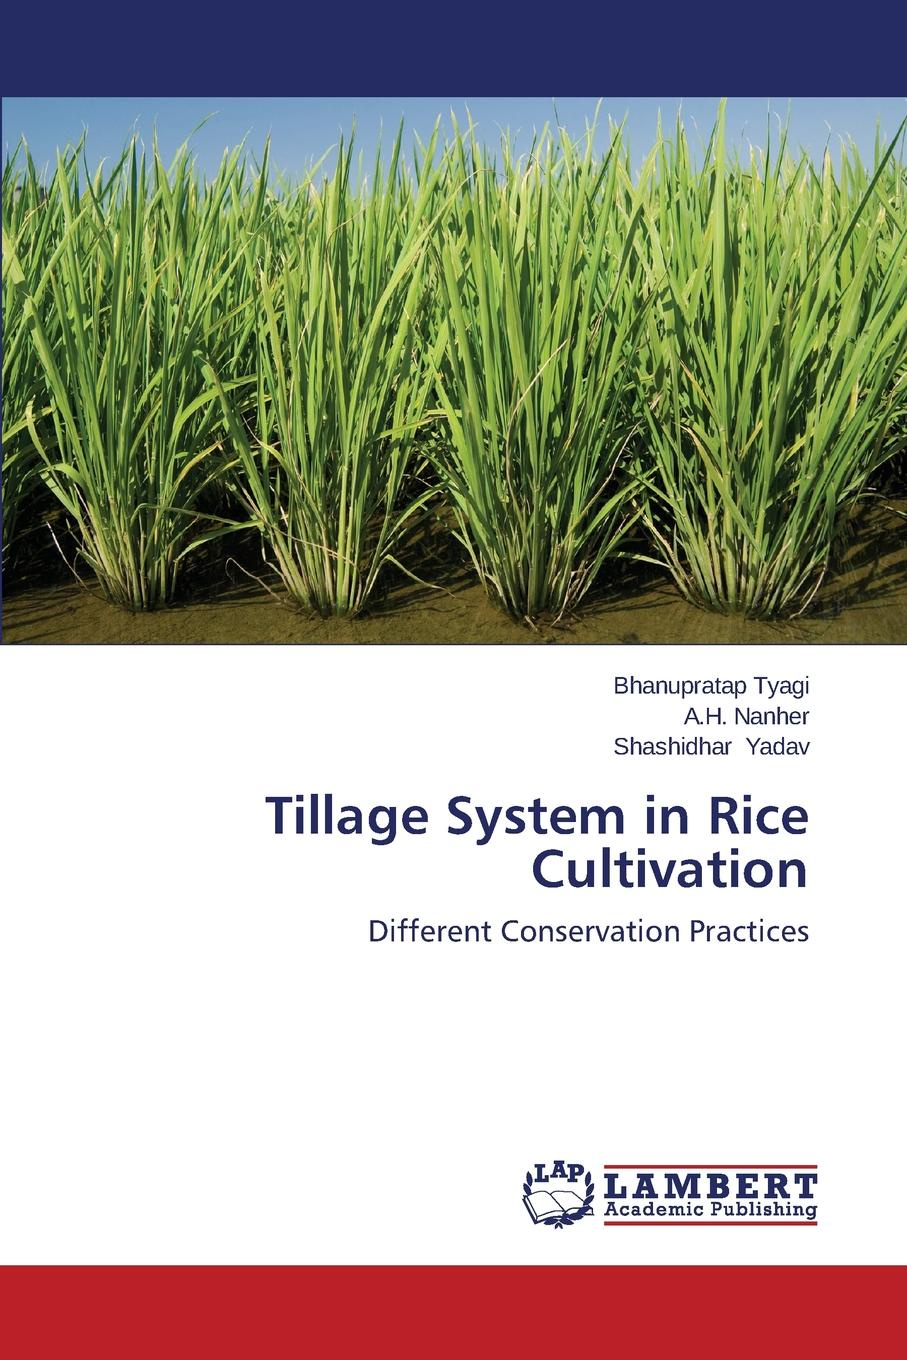 Tyagi Bhanupratap, Nanher A.H., Yadav Shashidhar Tillage System in Rice Cultivation bio fertilization for rice and residual effect on sequent crop